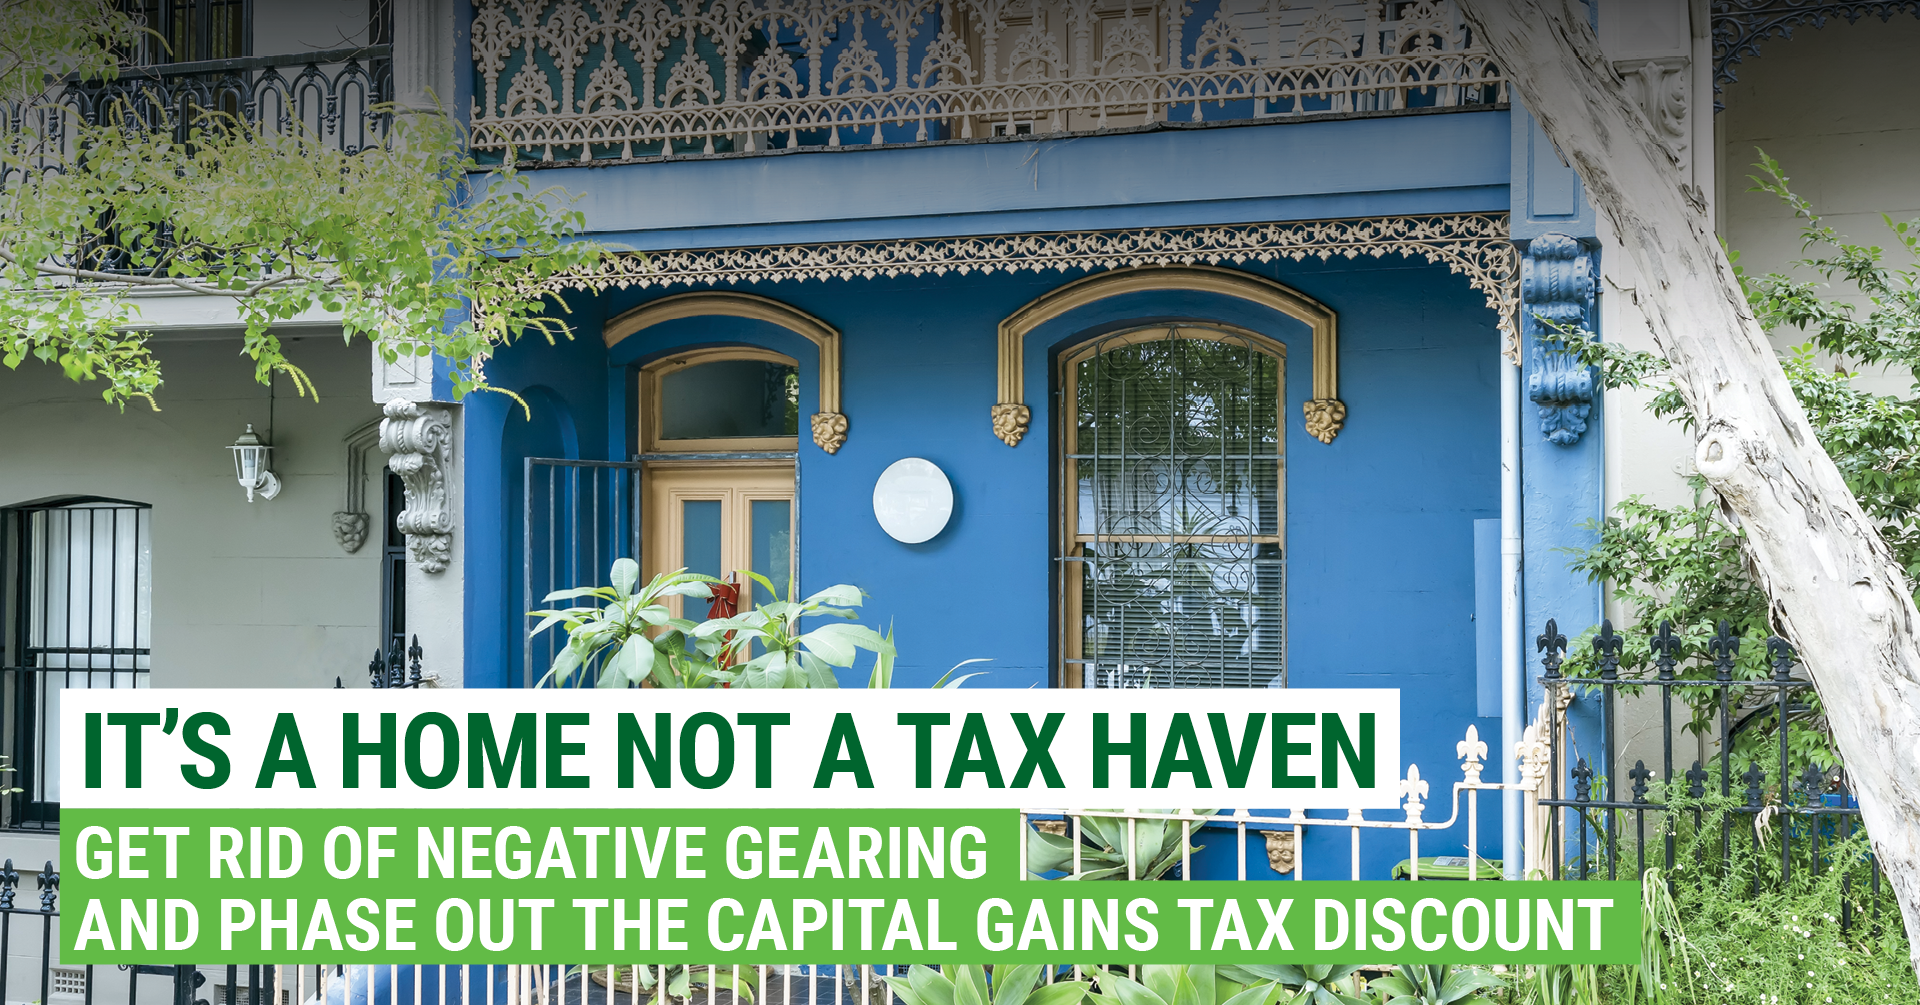 It's a home, not a tax haven. Only the Greens will get rid of negative gearing and capital gains tax discounts.